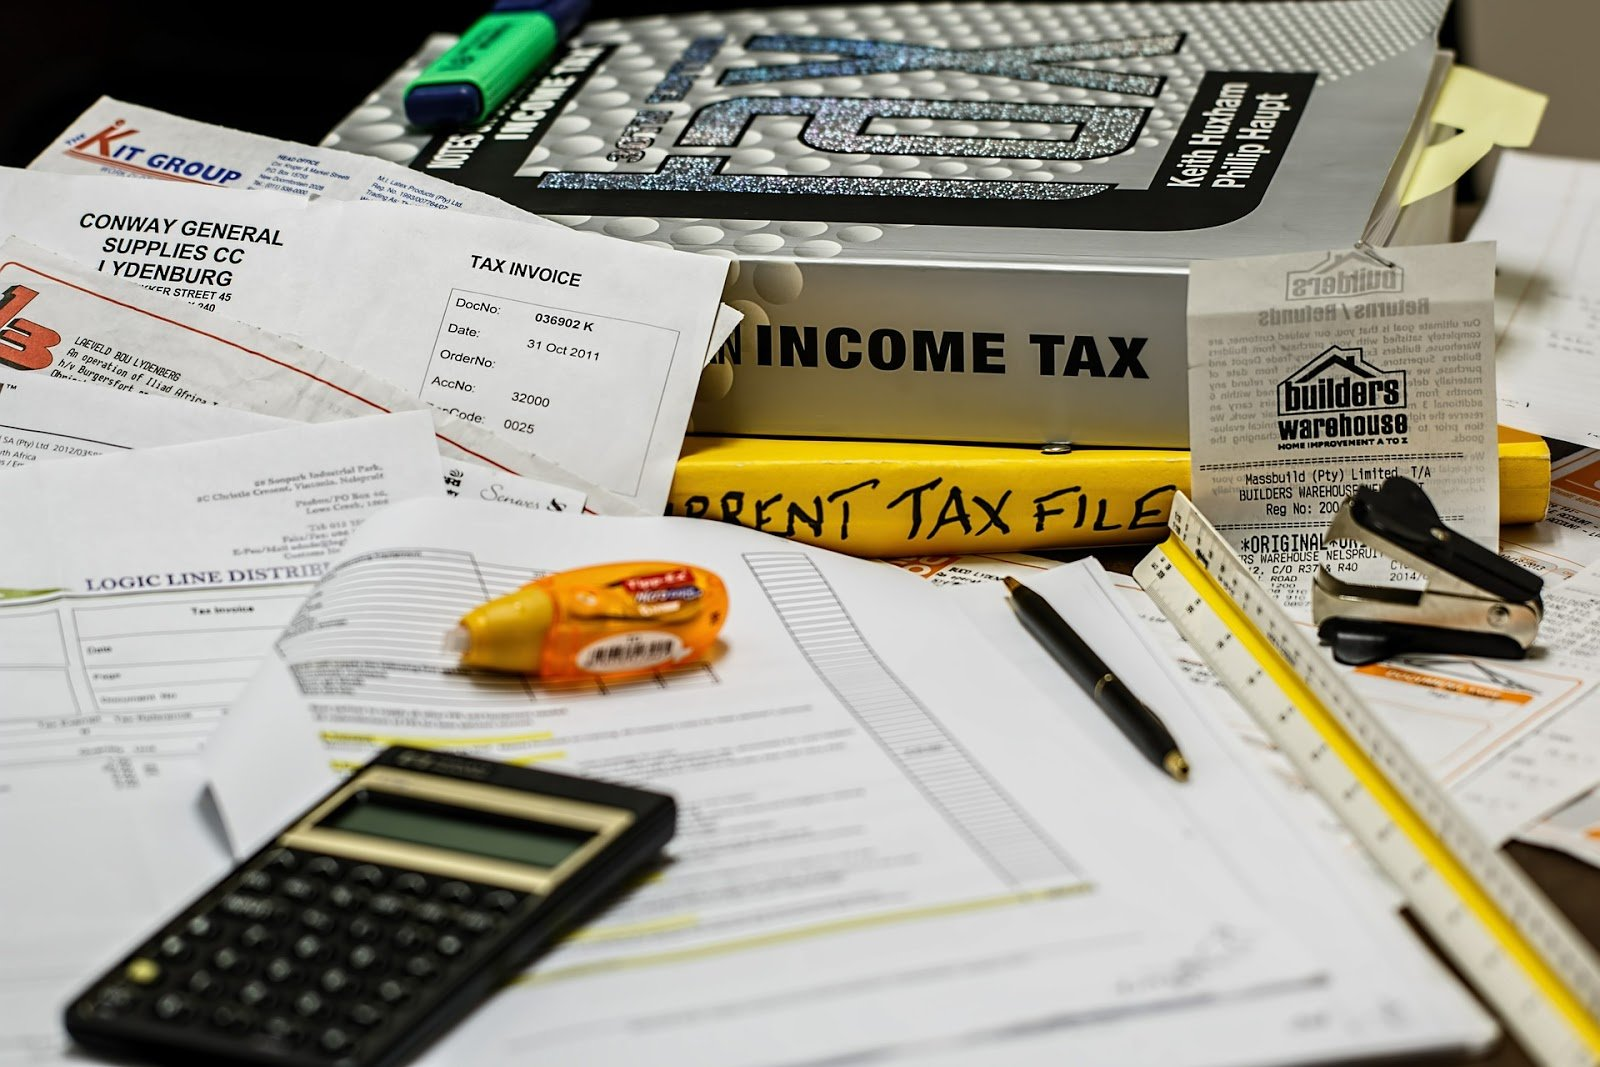 7 Tax Tips for Small Business & Entrepreneurs